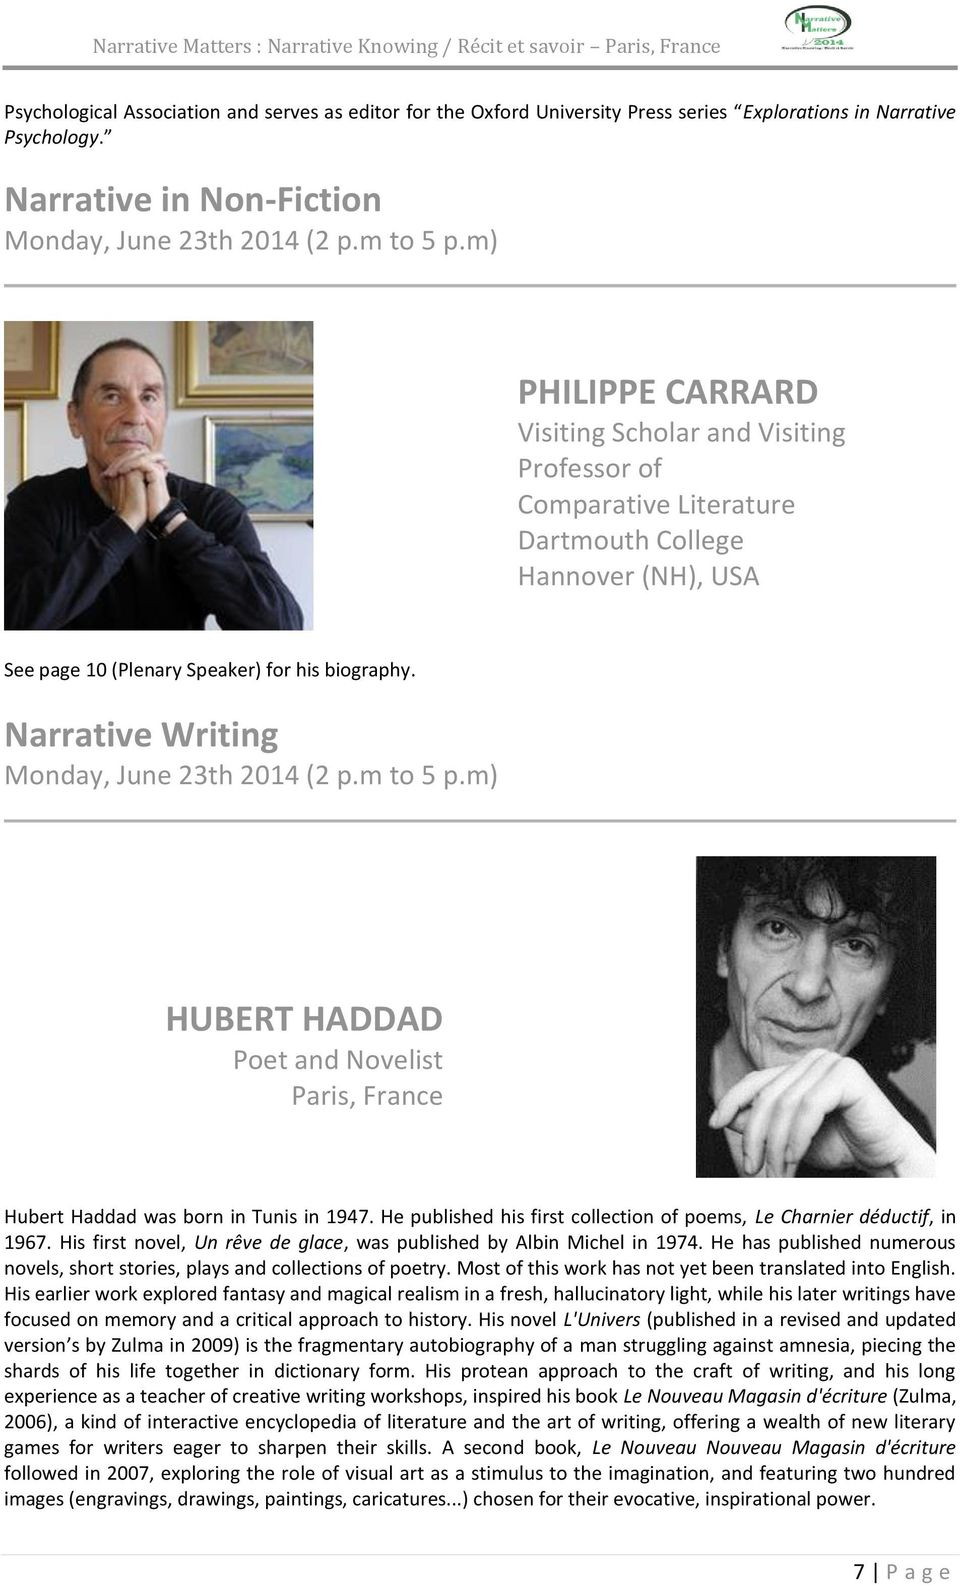 Narrative Writing Monday, June 23th 2014 (2 p.m to 5 p.m) HUBERT HADDAD Poet and Novelist Paris, France Hubert Haddad was born in Tunis in 1947.